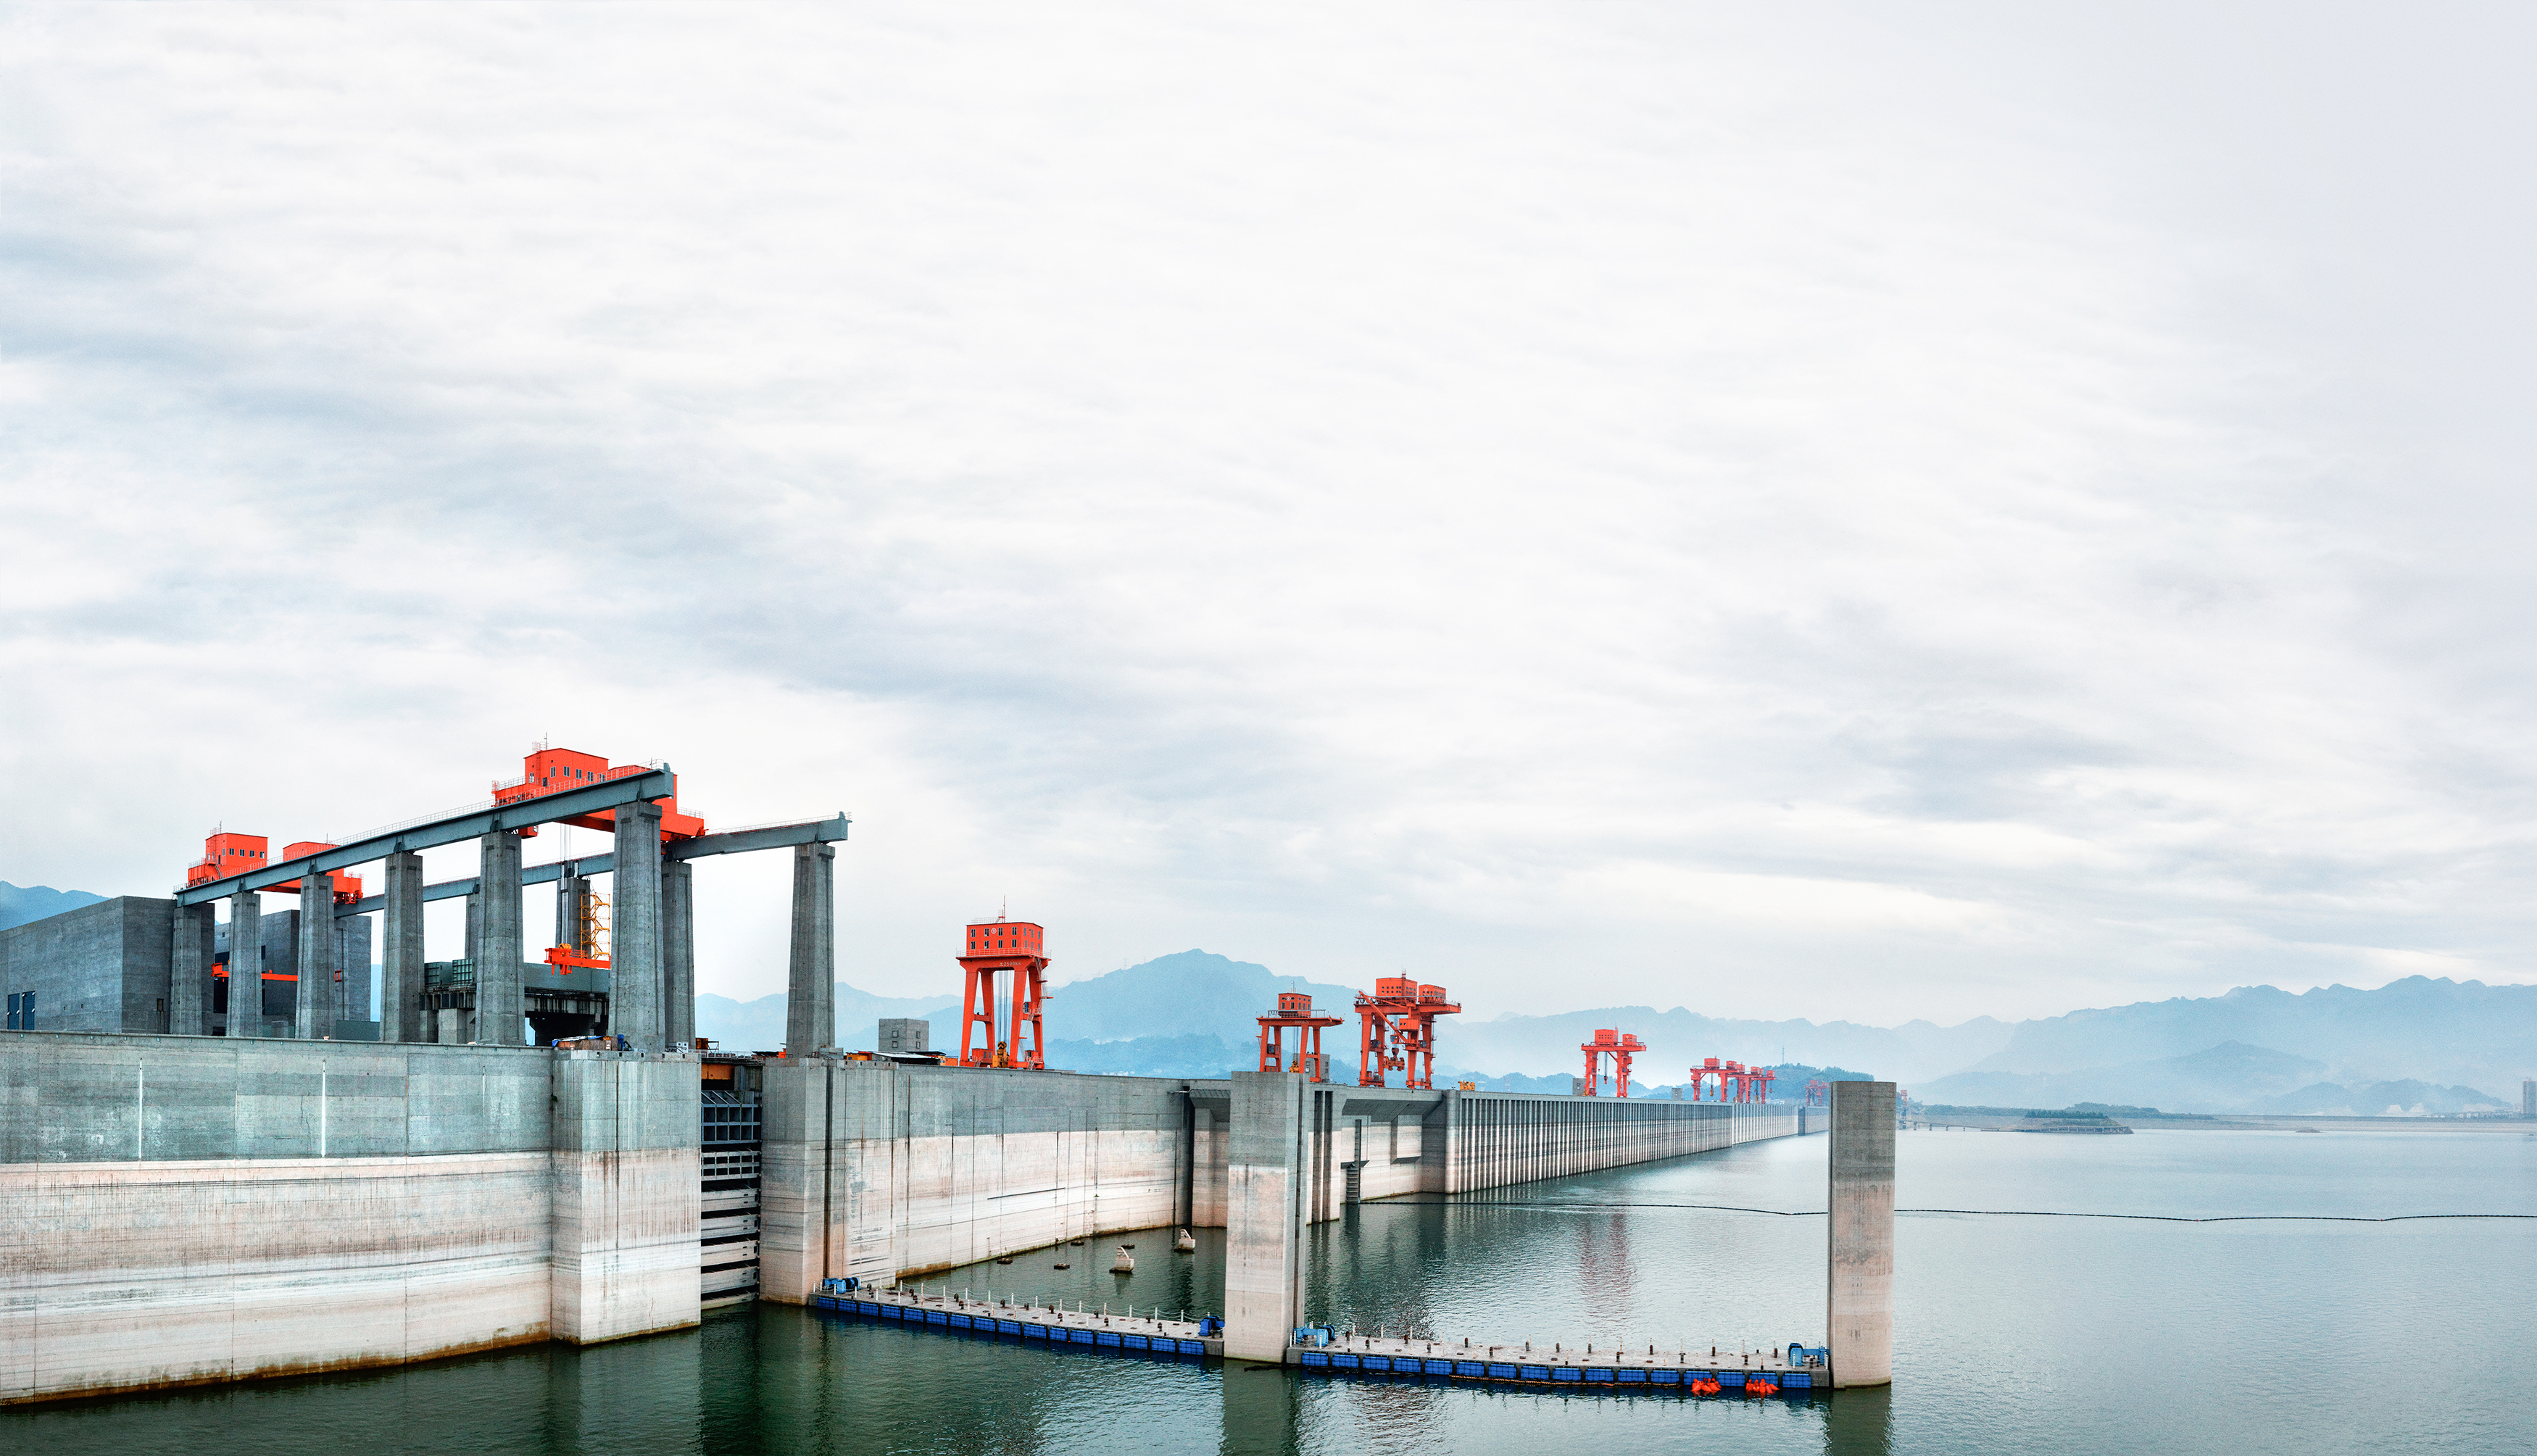 The ship lift seen from the top of the Three Gorges dam.